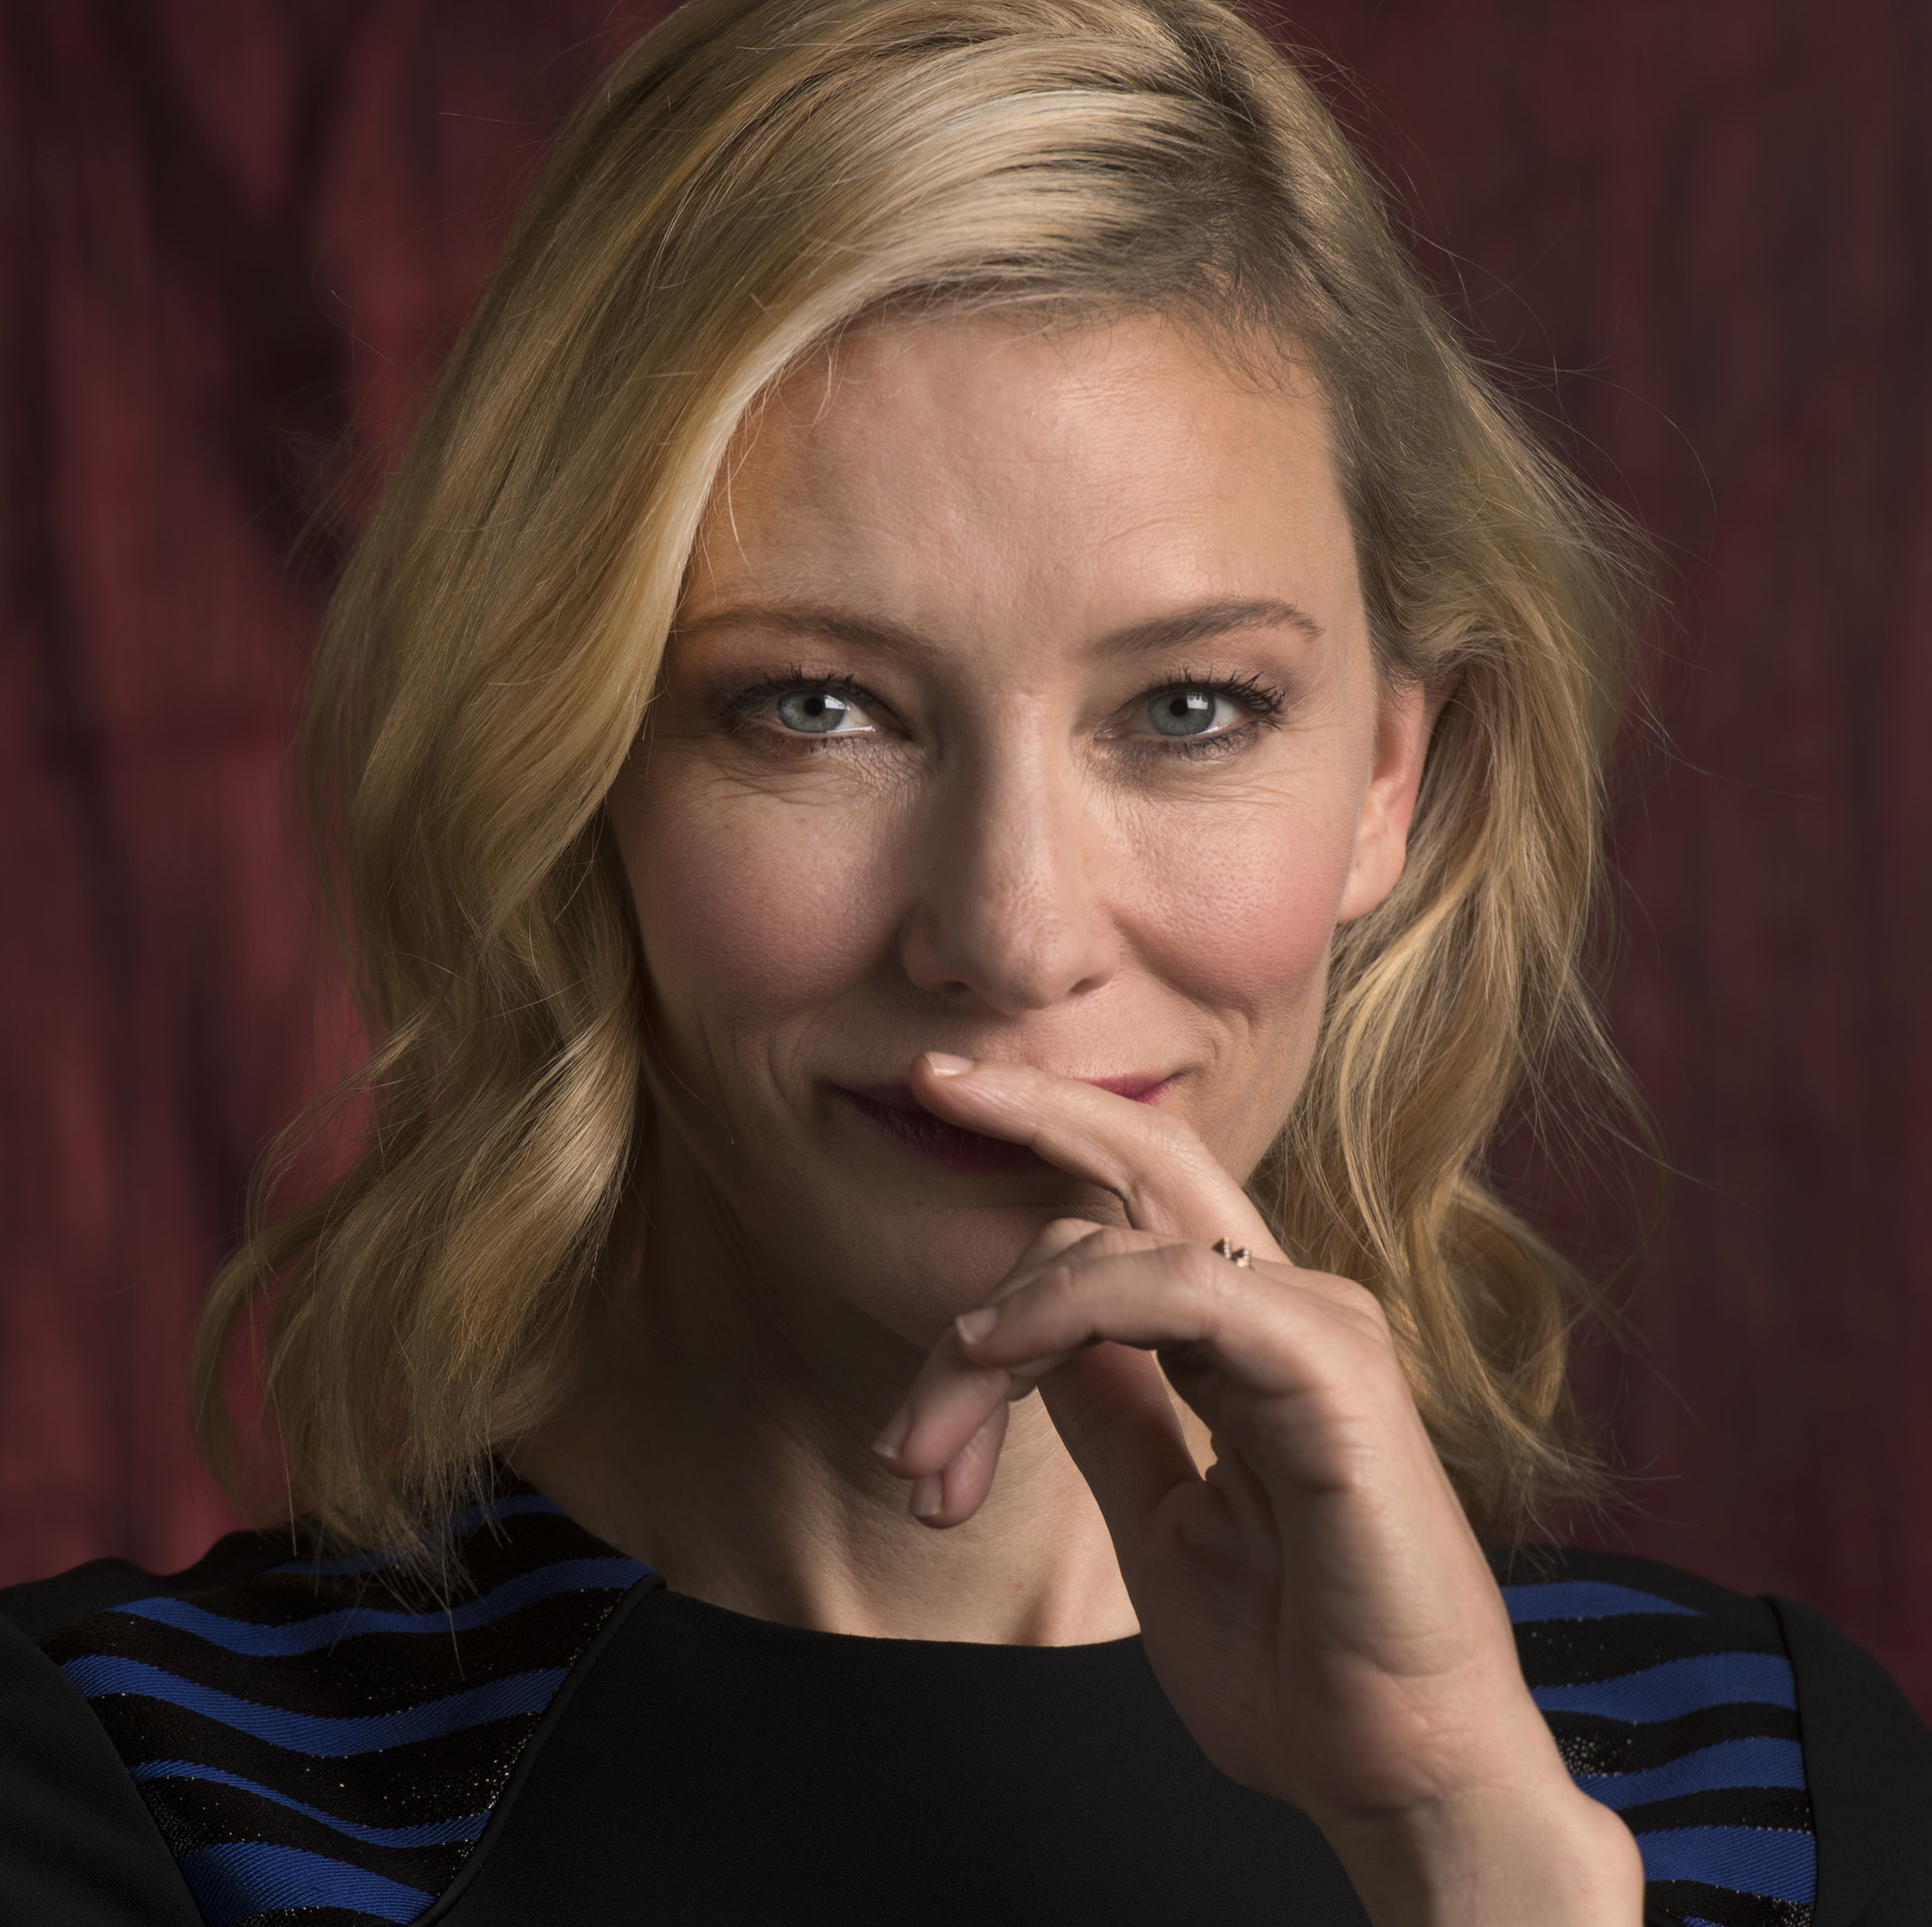 XXX_BLANCHETT_JAMES_PORTRAIT_064_71292270 copy.jpg